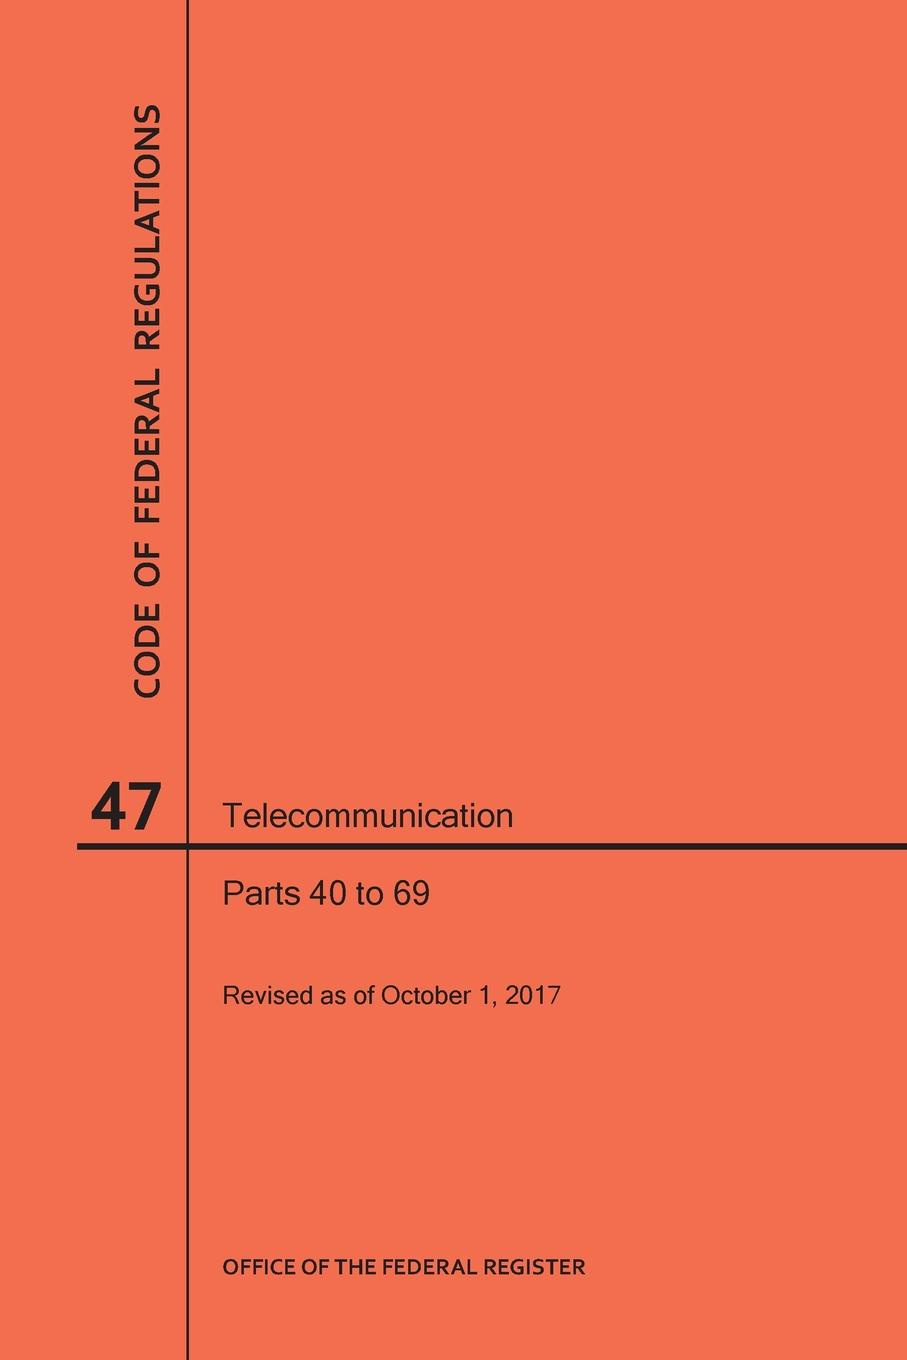 NARA Code of Federal Regulations Title 47, Telecommunication, Parts 40-69, 2017 цены